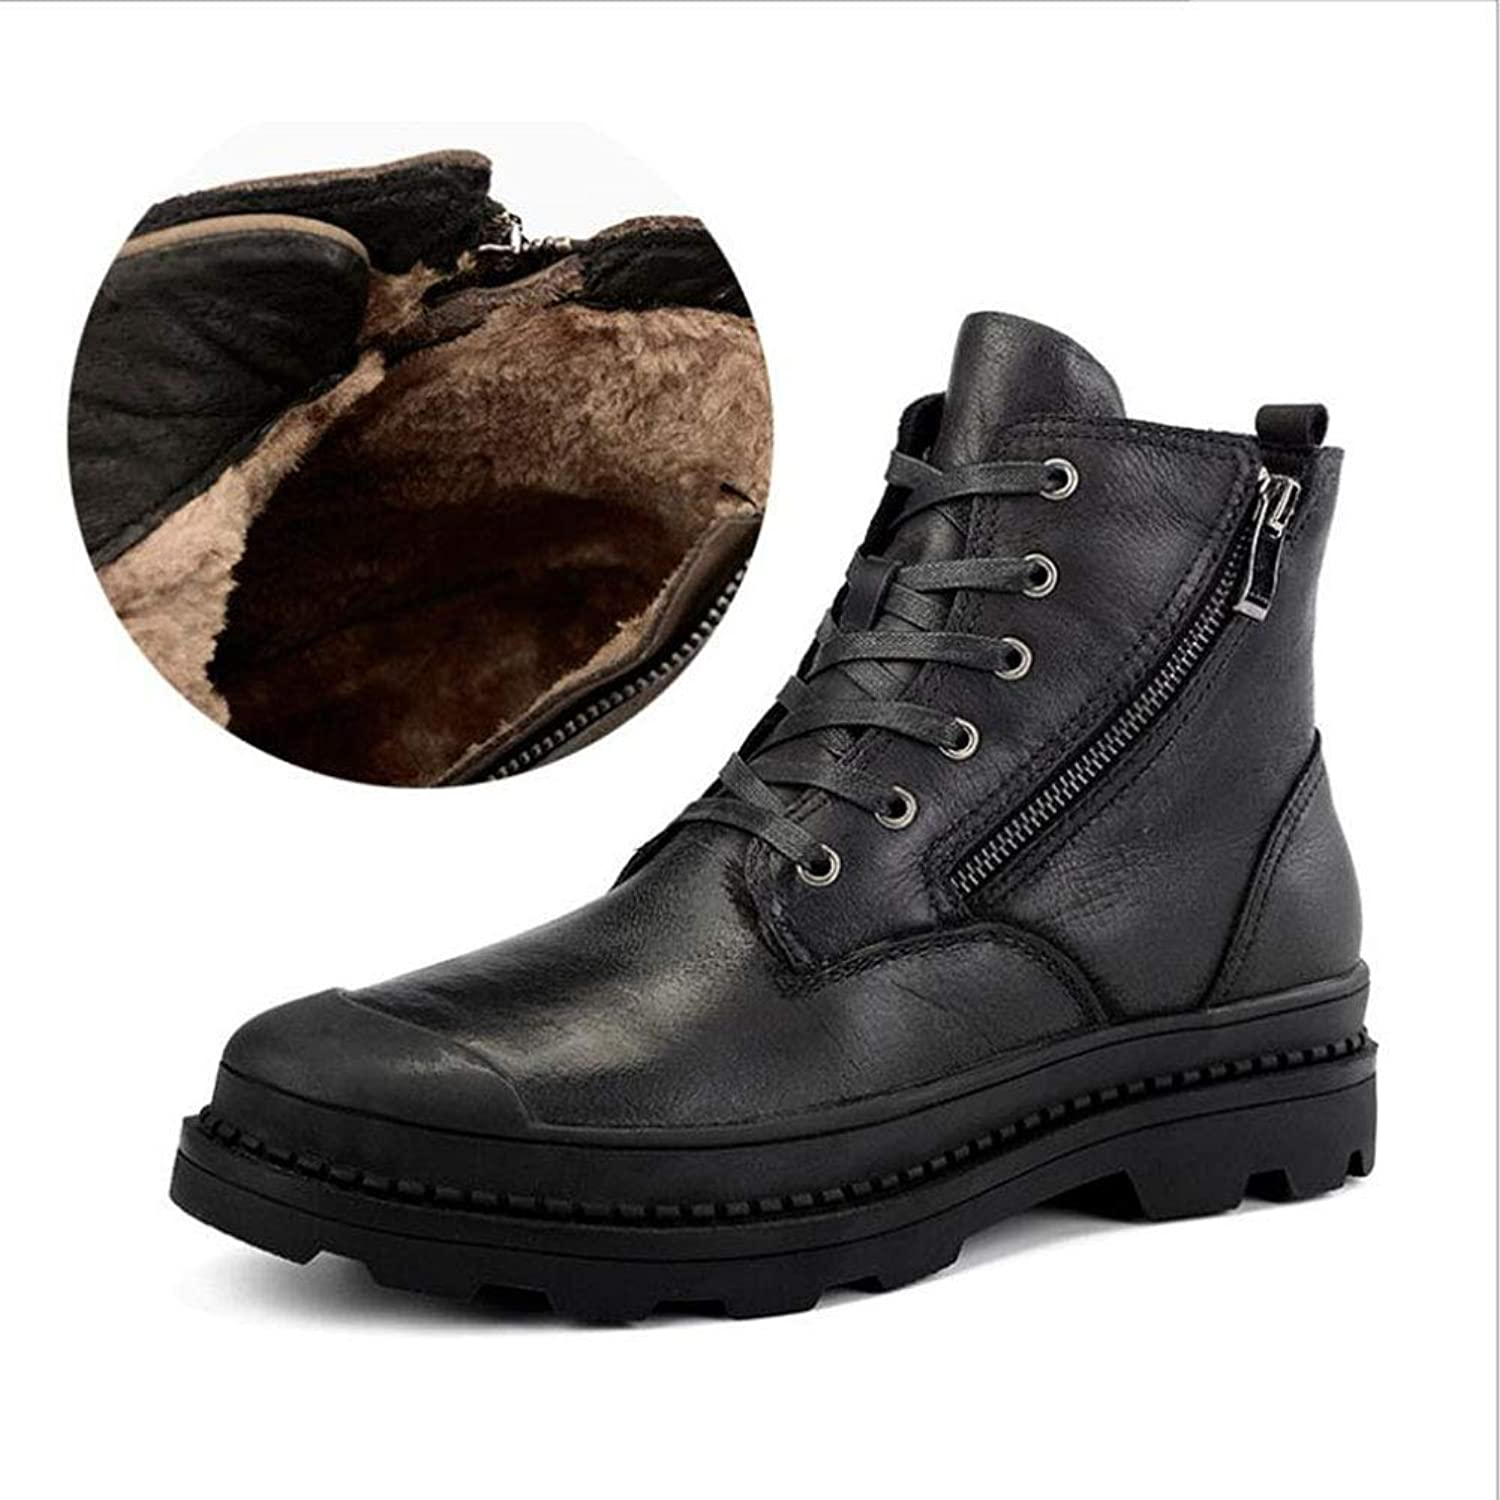 Men's Boots,Spring Winter,Leather Martin Style,Comfort Cotton Boots,Running shoes,Athletic shoes, Outdoor Exercise Sneakers,Tooling shoes,Military Boots,A,38